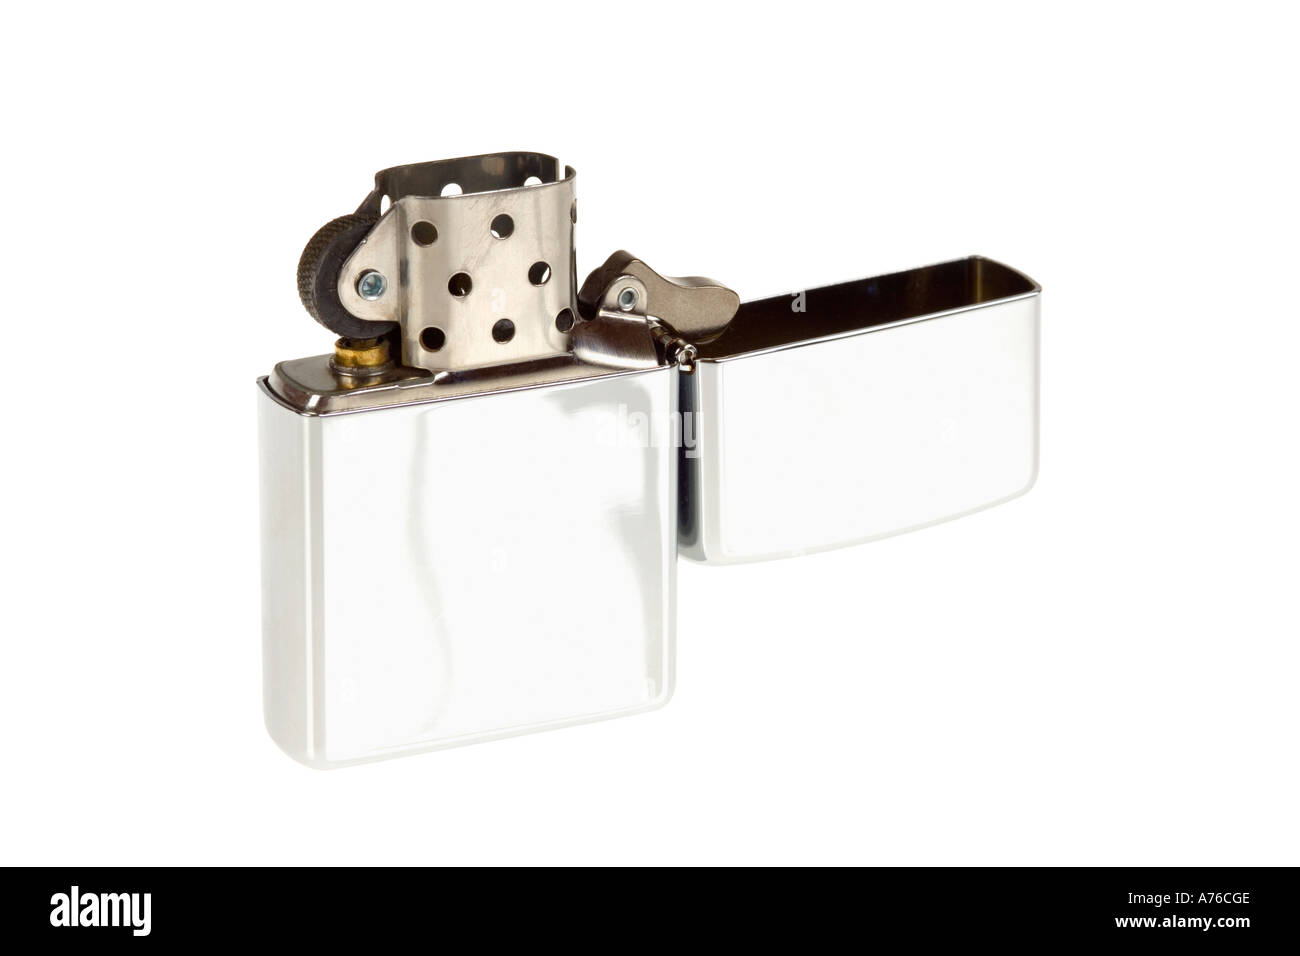 Flip top petrol zippo style lighter on a pure white background. - Stock Image